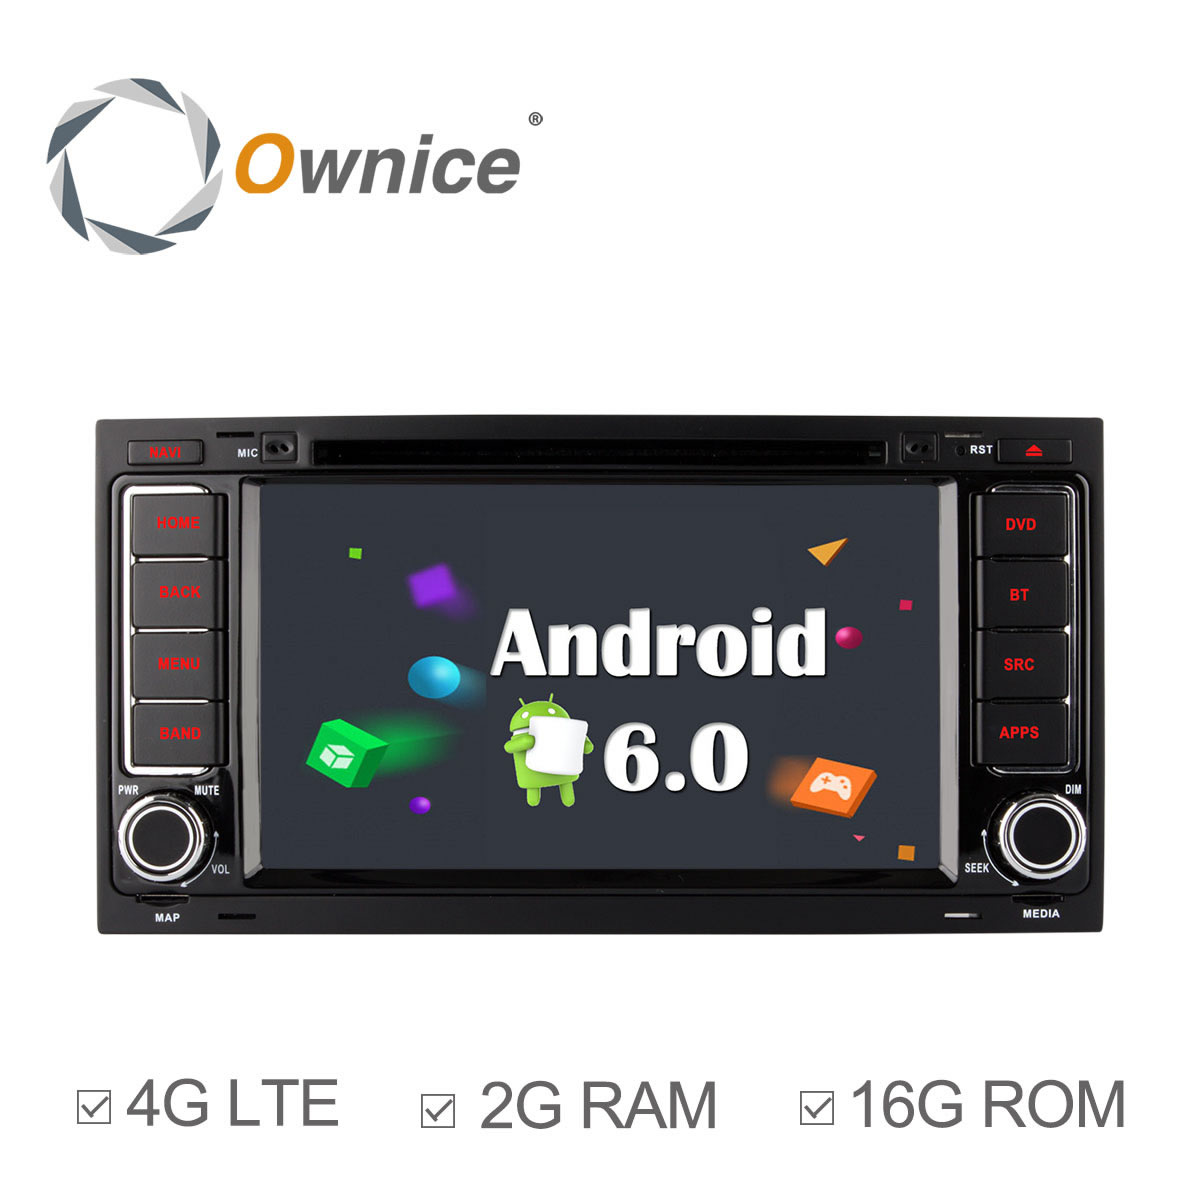 Ownice C500 Android 6.0 4 Core 2G RAM Car DVD Radio GPS Player for Volkswagen Touareg T5 Multivan Transporter 4G LTE Network